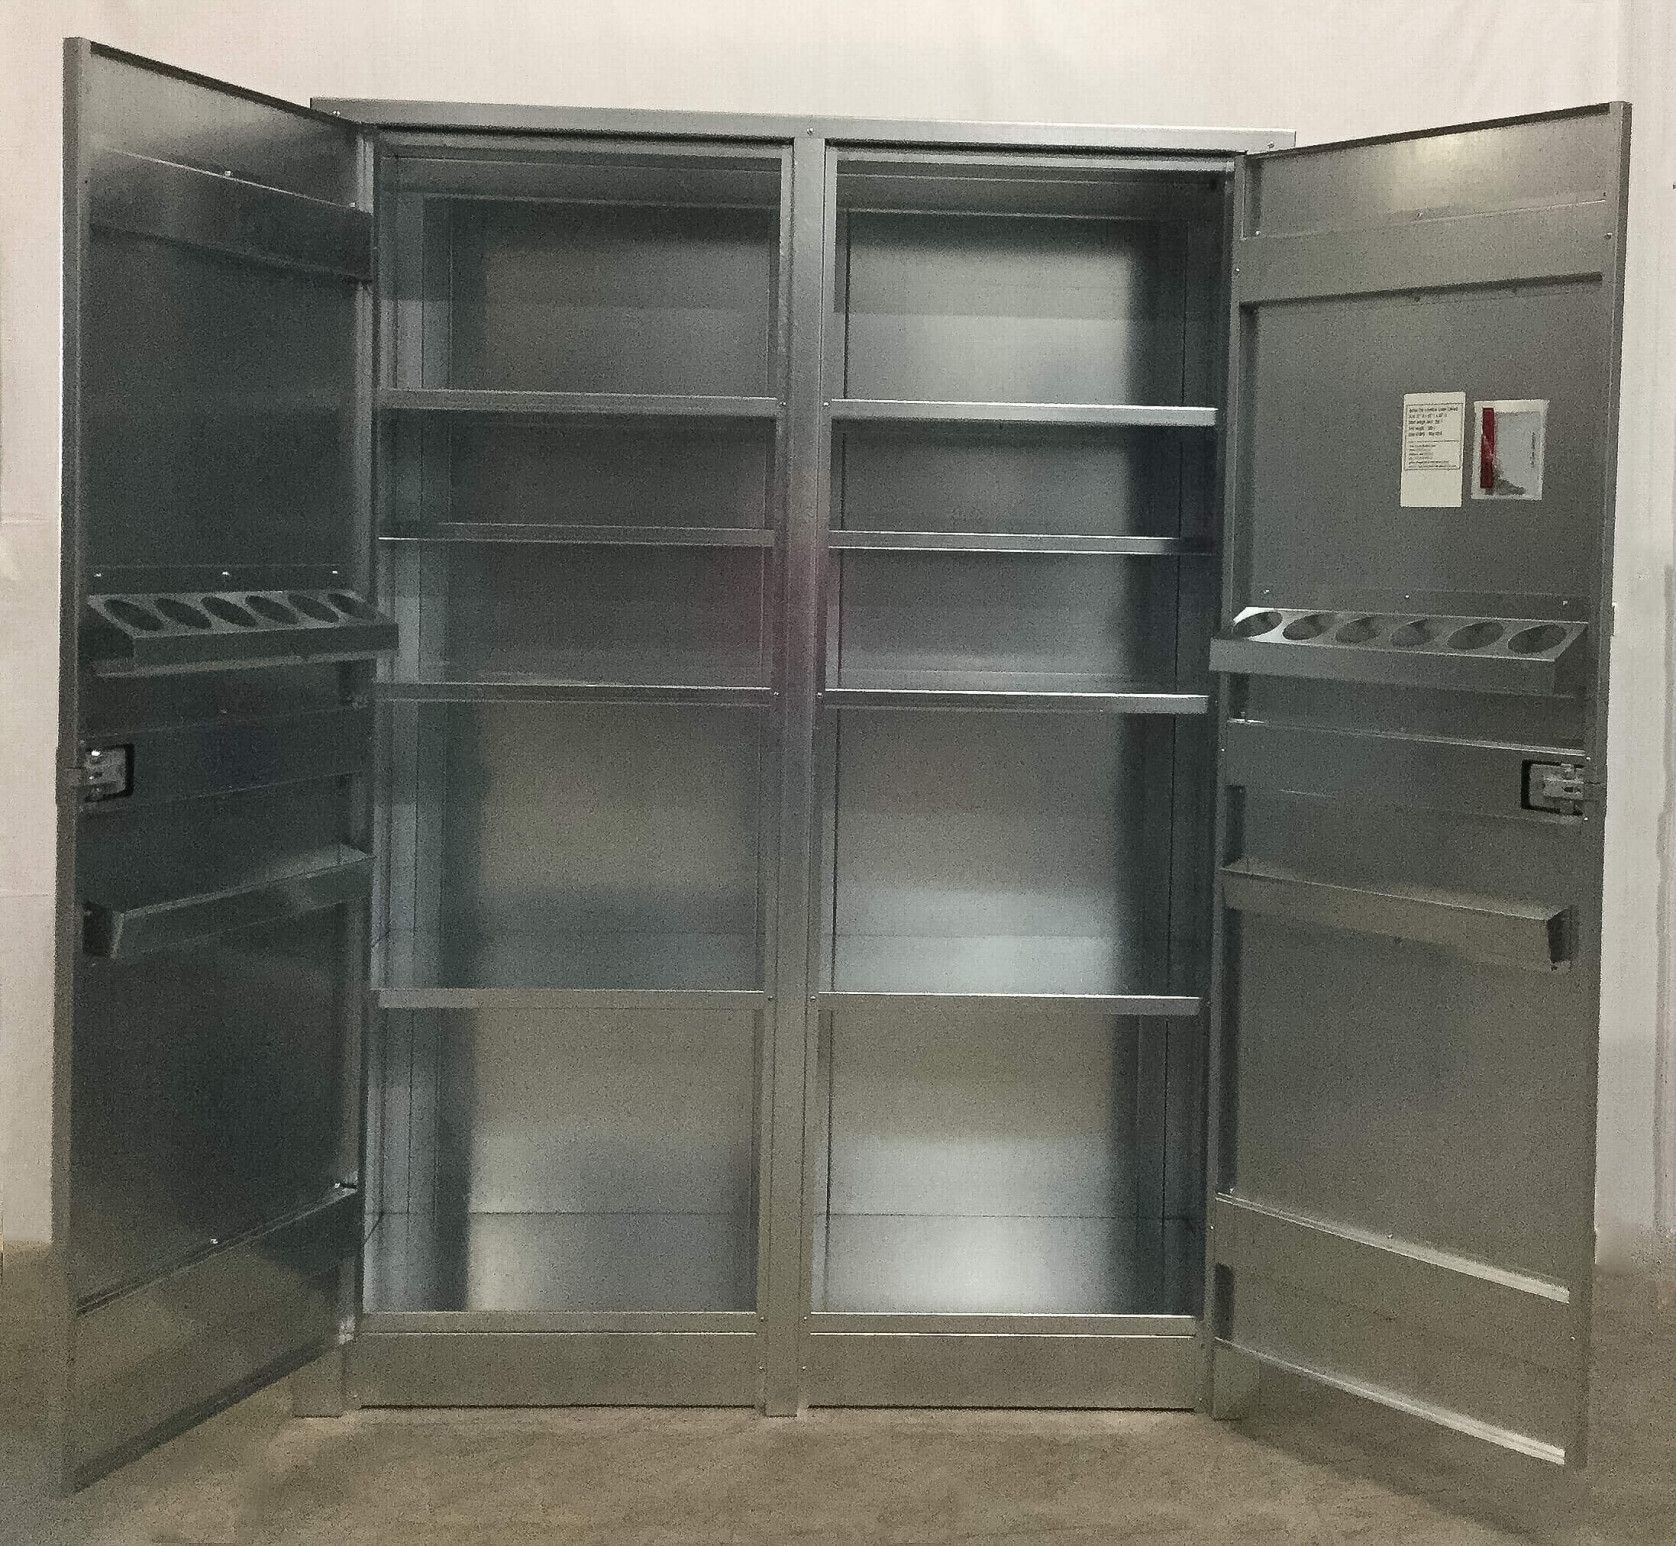 50 Used Metal Storage Cabinets For Garage Best Kitchen Cabinet Ideas Check More At Steel Storage Cabinets Metal Storage Cabinets Industrial Storage Cabinets